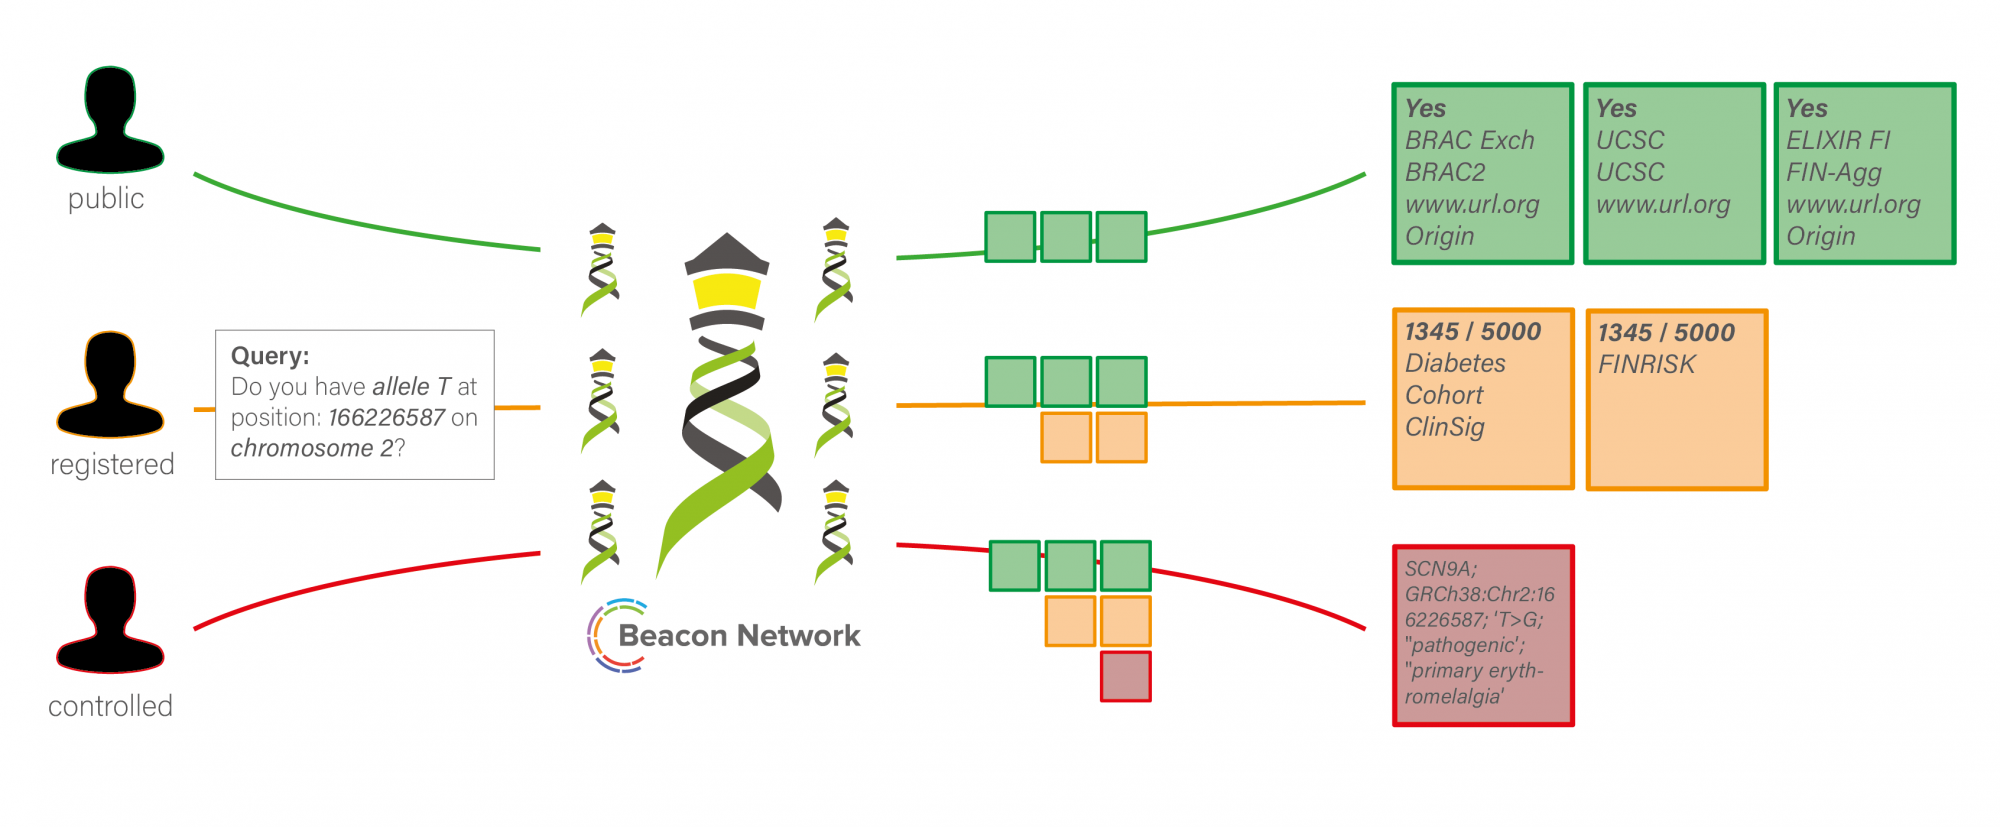 ELIXIR Beacon schema